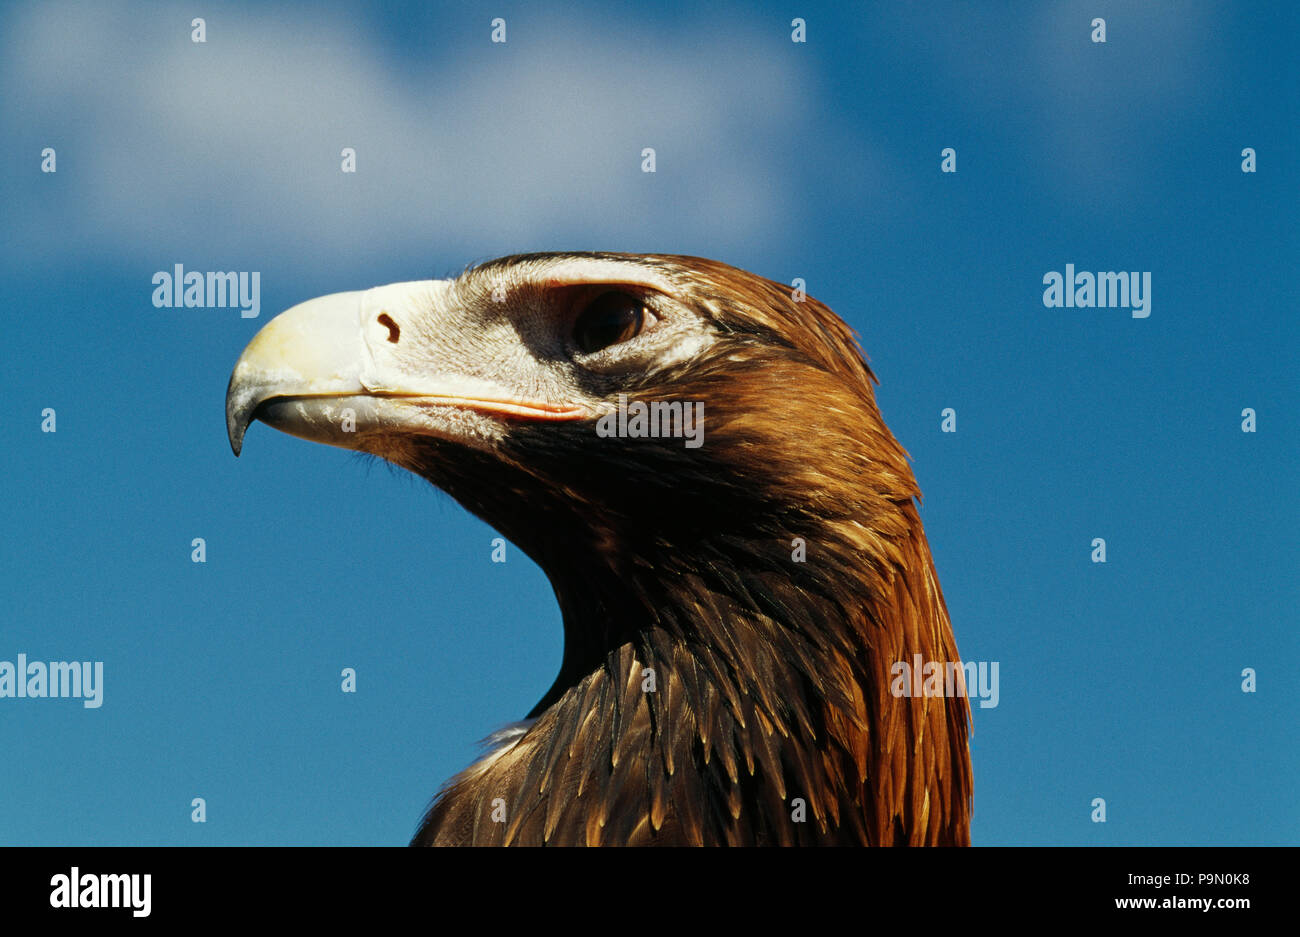 The hooked beak and eye of a wedge tailed eagle. Stock Photo